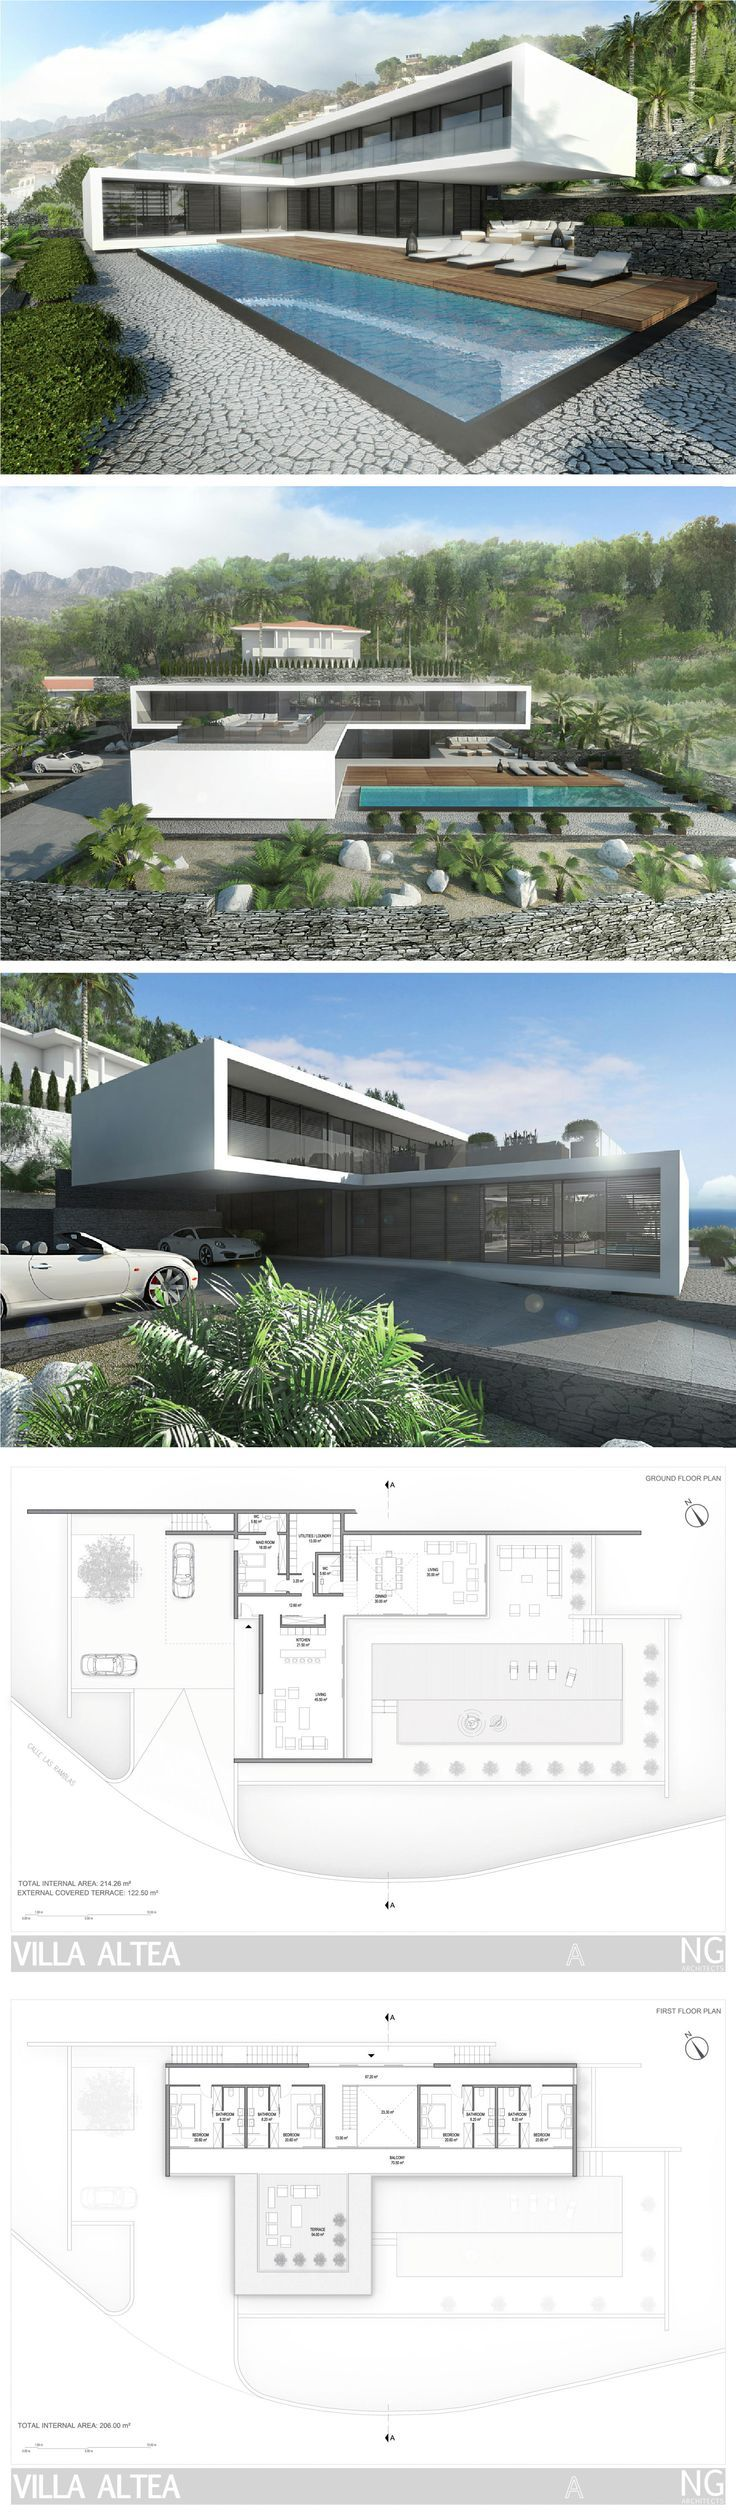 Pin modern villa projeleri ve modern villa modelleri on pinterest - 17 Best Images About Arquitectura On Pinterest Industrial Companies Museum Architecture And House